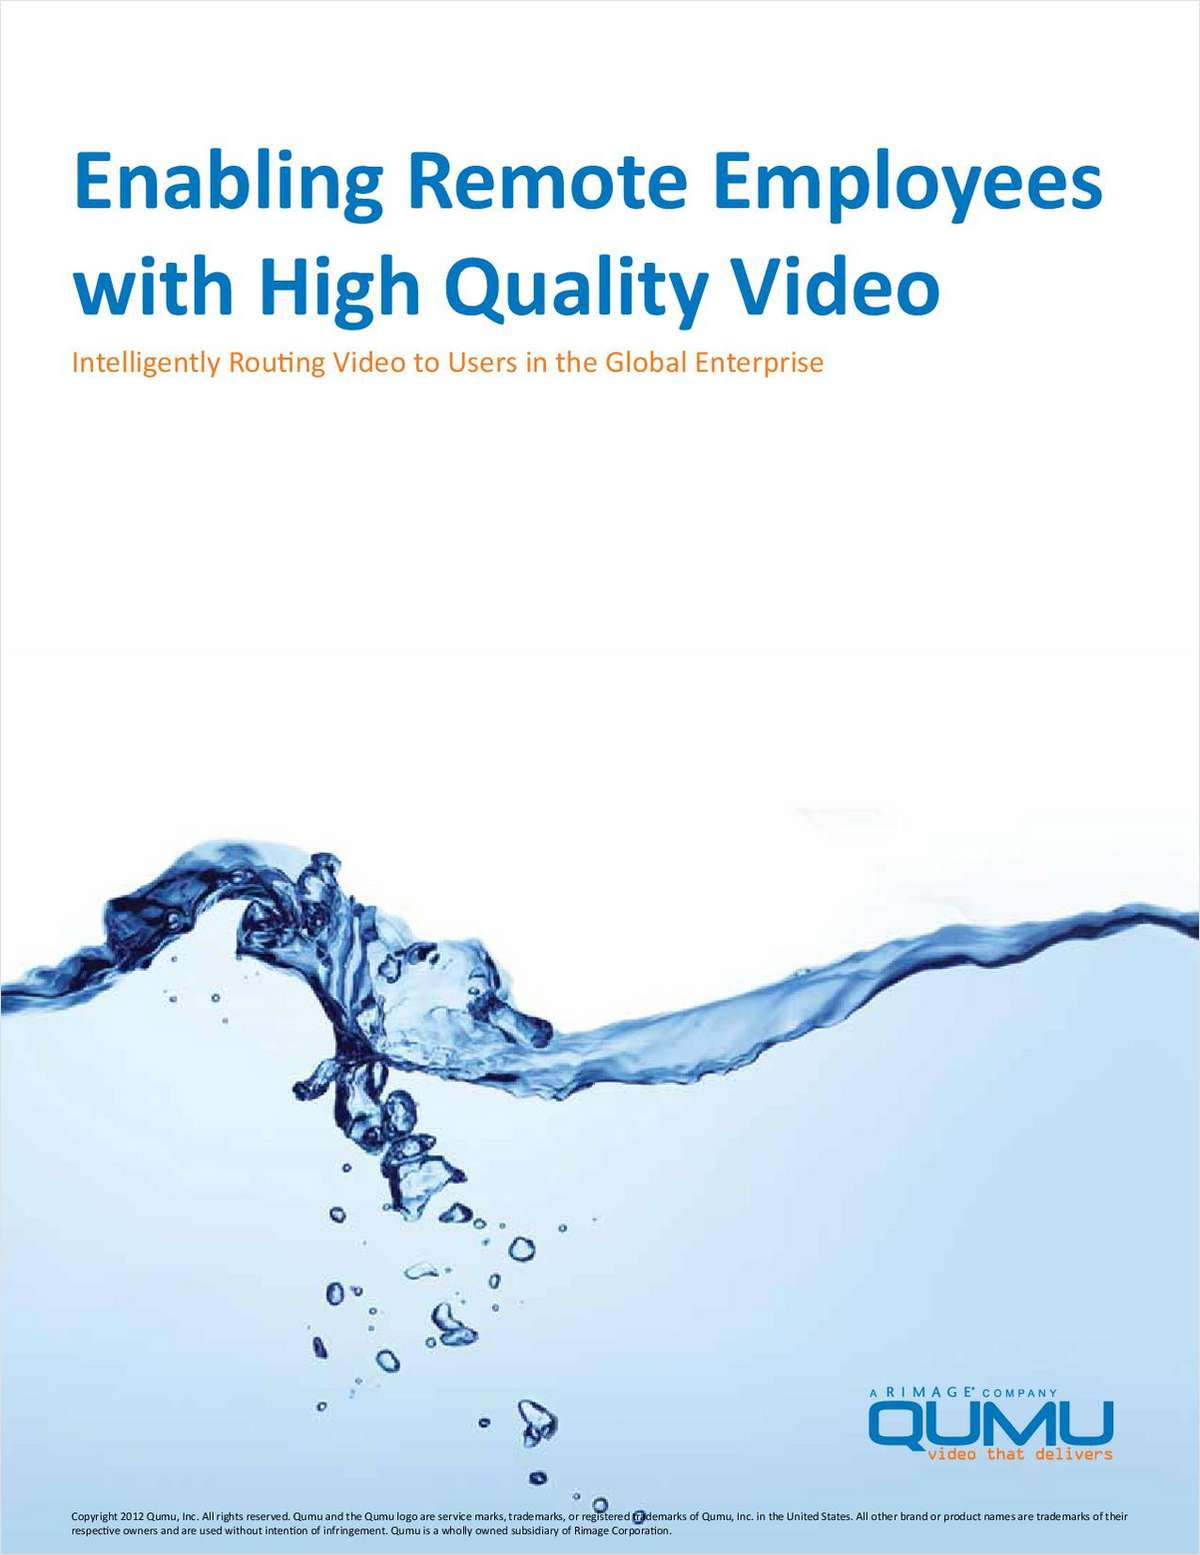 Enable Global Remote Employees with High Quality Video by Intelligently Routing Video to the User